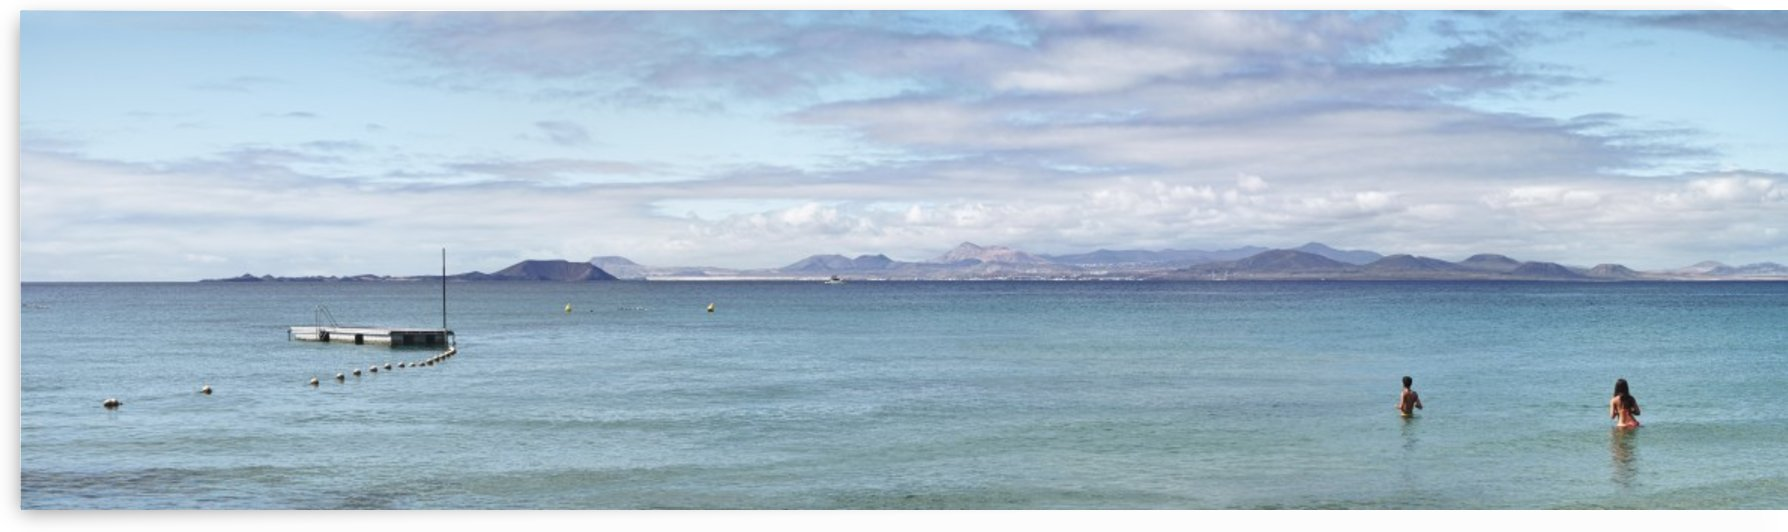 Panorama of Pontoon and Fuerteventura by Adrian Brockwell